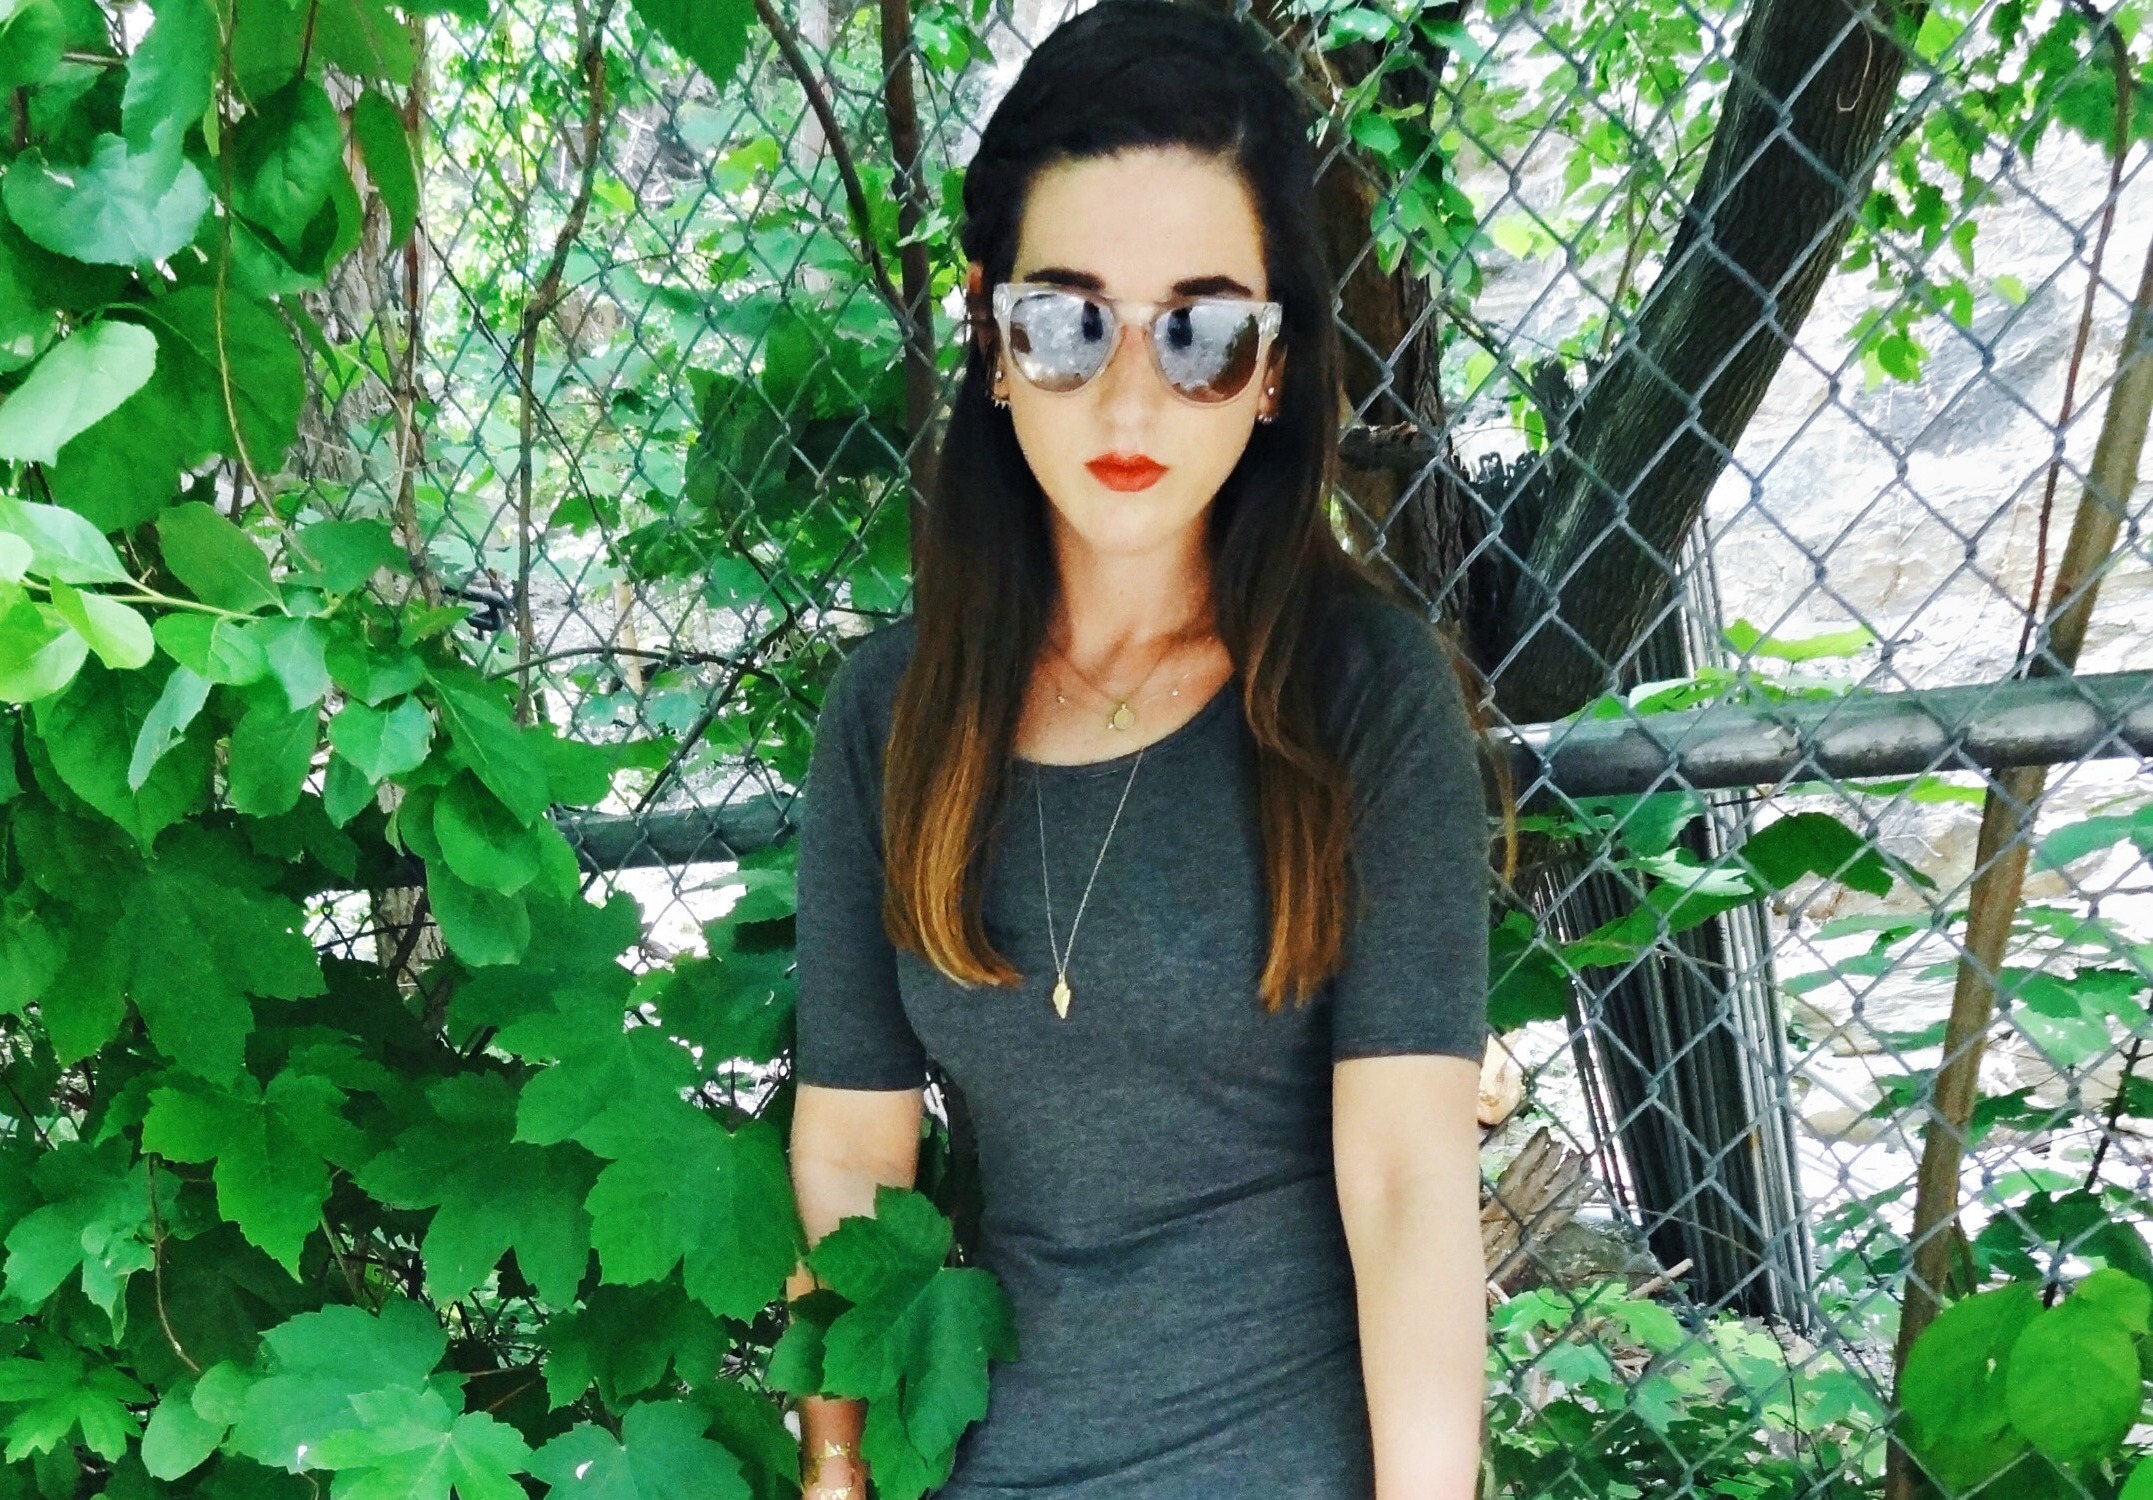 Leah & Pearl Grey Fringe Dress Louboutins & Love Fashion Blog Esther Santer Street Style Outfit OOTD Sunglasses Jcrew Mules Gold Black Zara Necklace Coco & Marie Flowers Summer Look Girl Model Photoshoot NYC Beautiful Brunette Trendy Swag Women.JPG